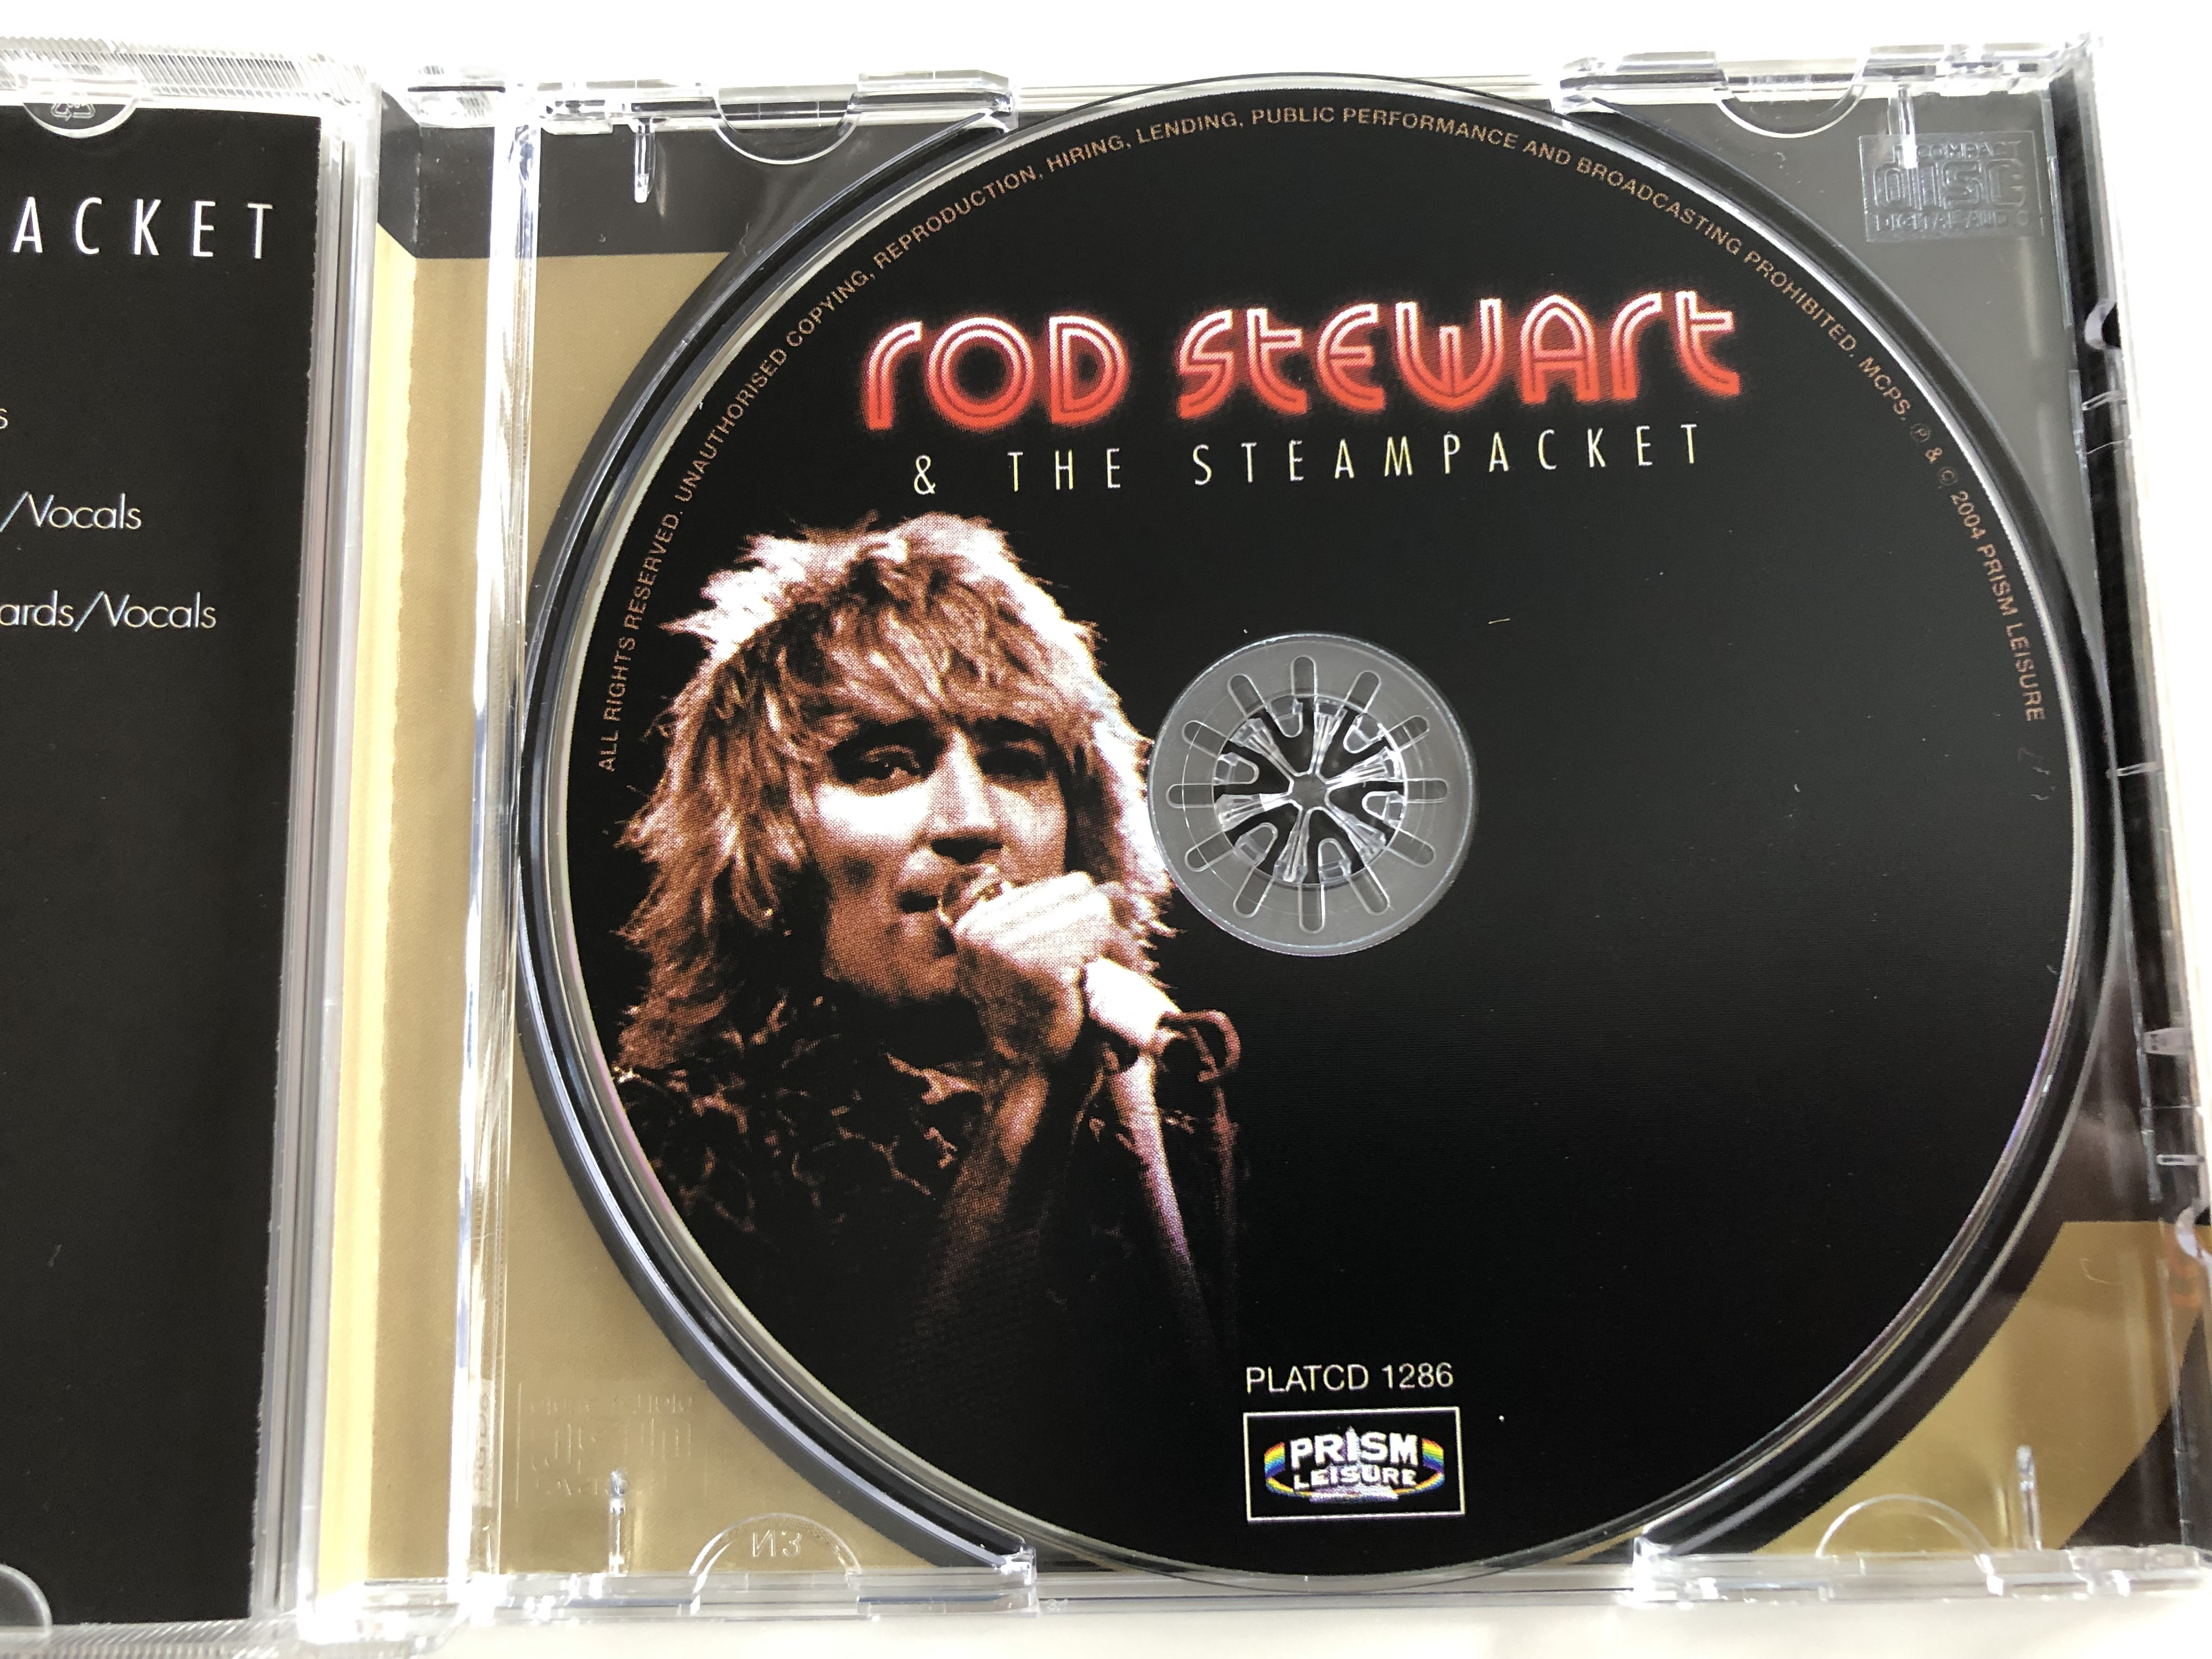 rod-stewart-the-steampacket-ain-t-that-lovin-you-baby-a-privileged-studio-view-of-the-singers-early-days-audio-cd-2004-platcd-1286-3-.jpg